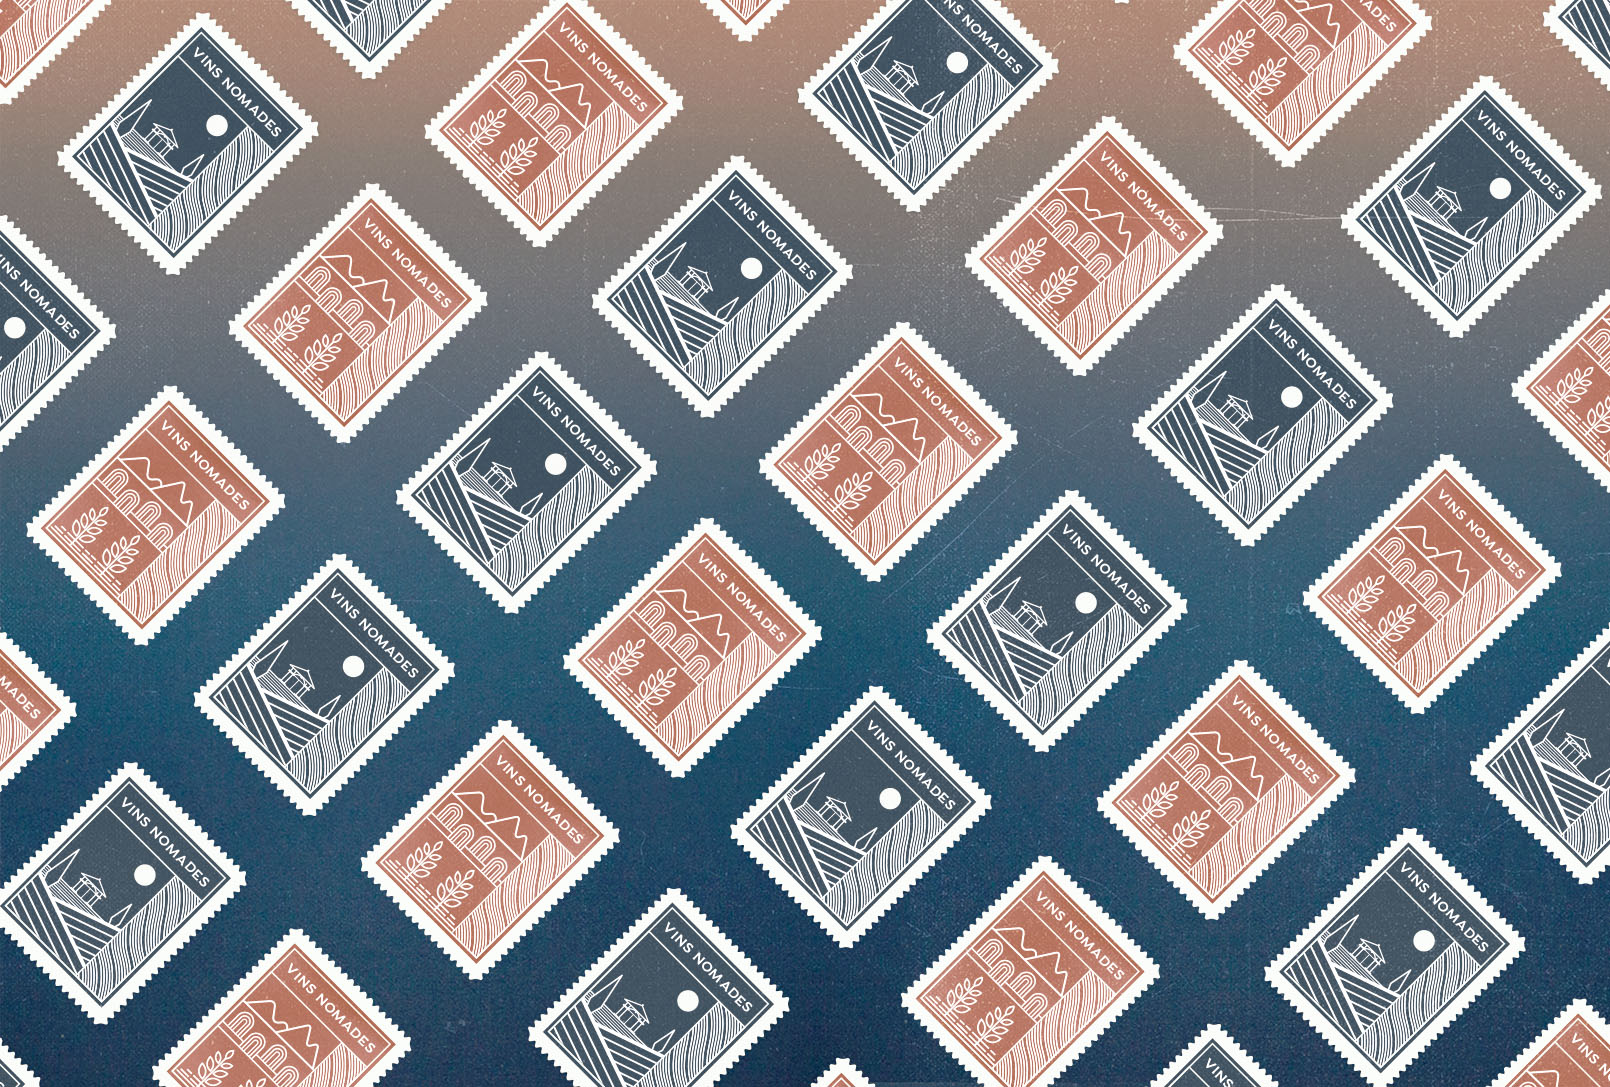 montage-timbres2.jpg